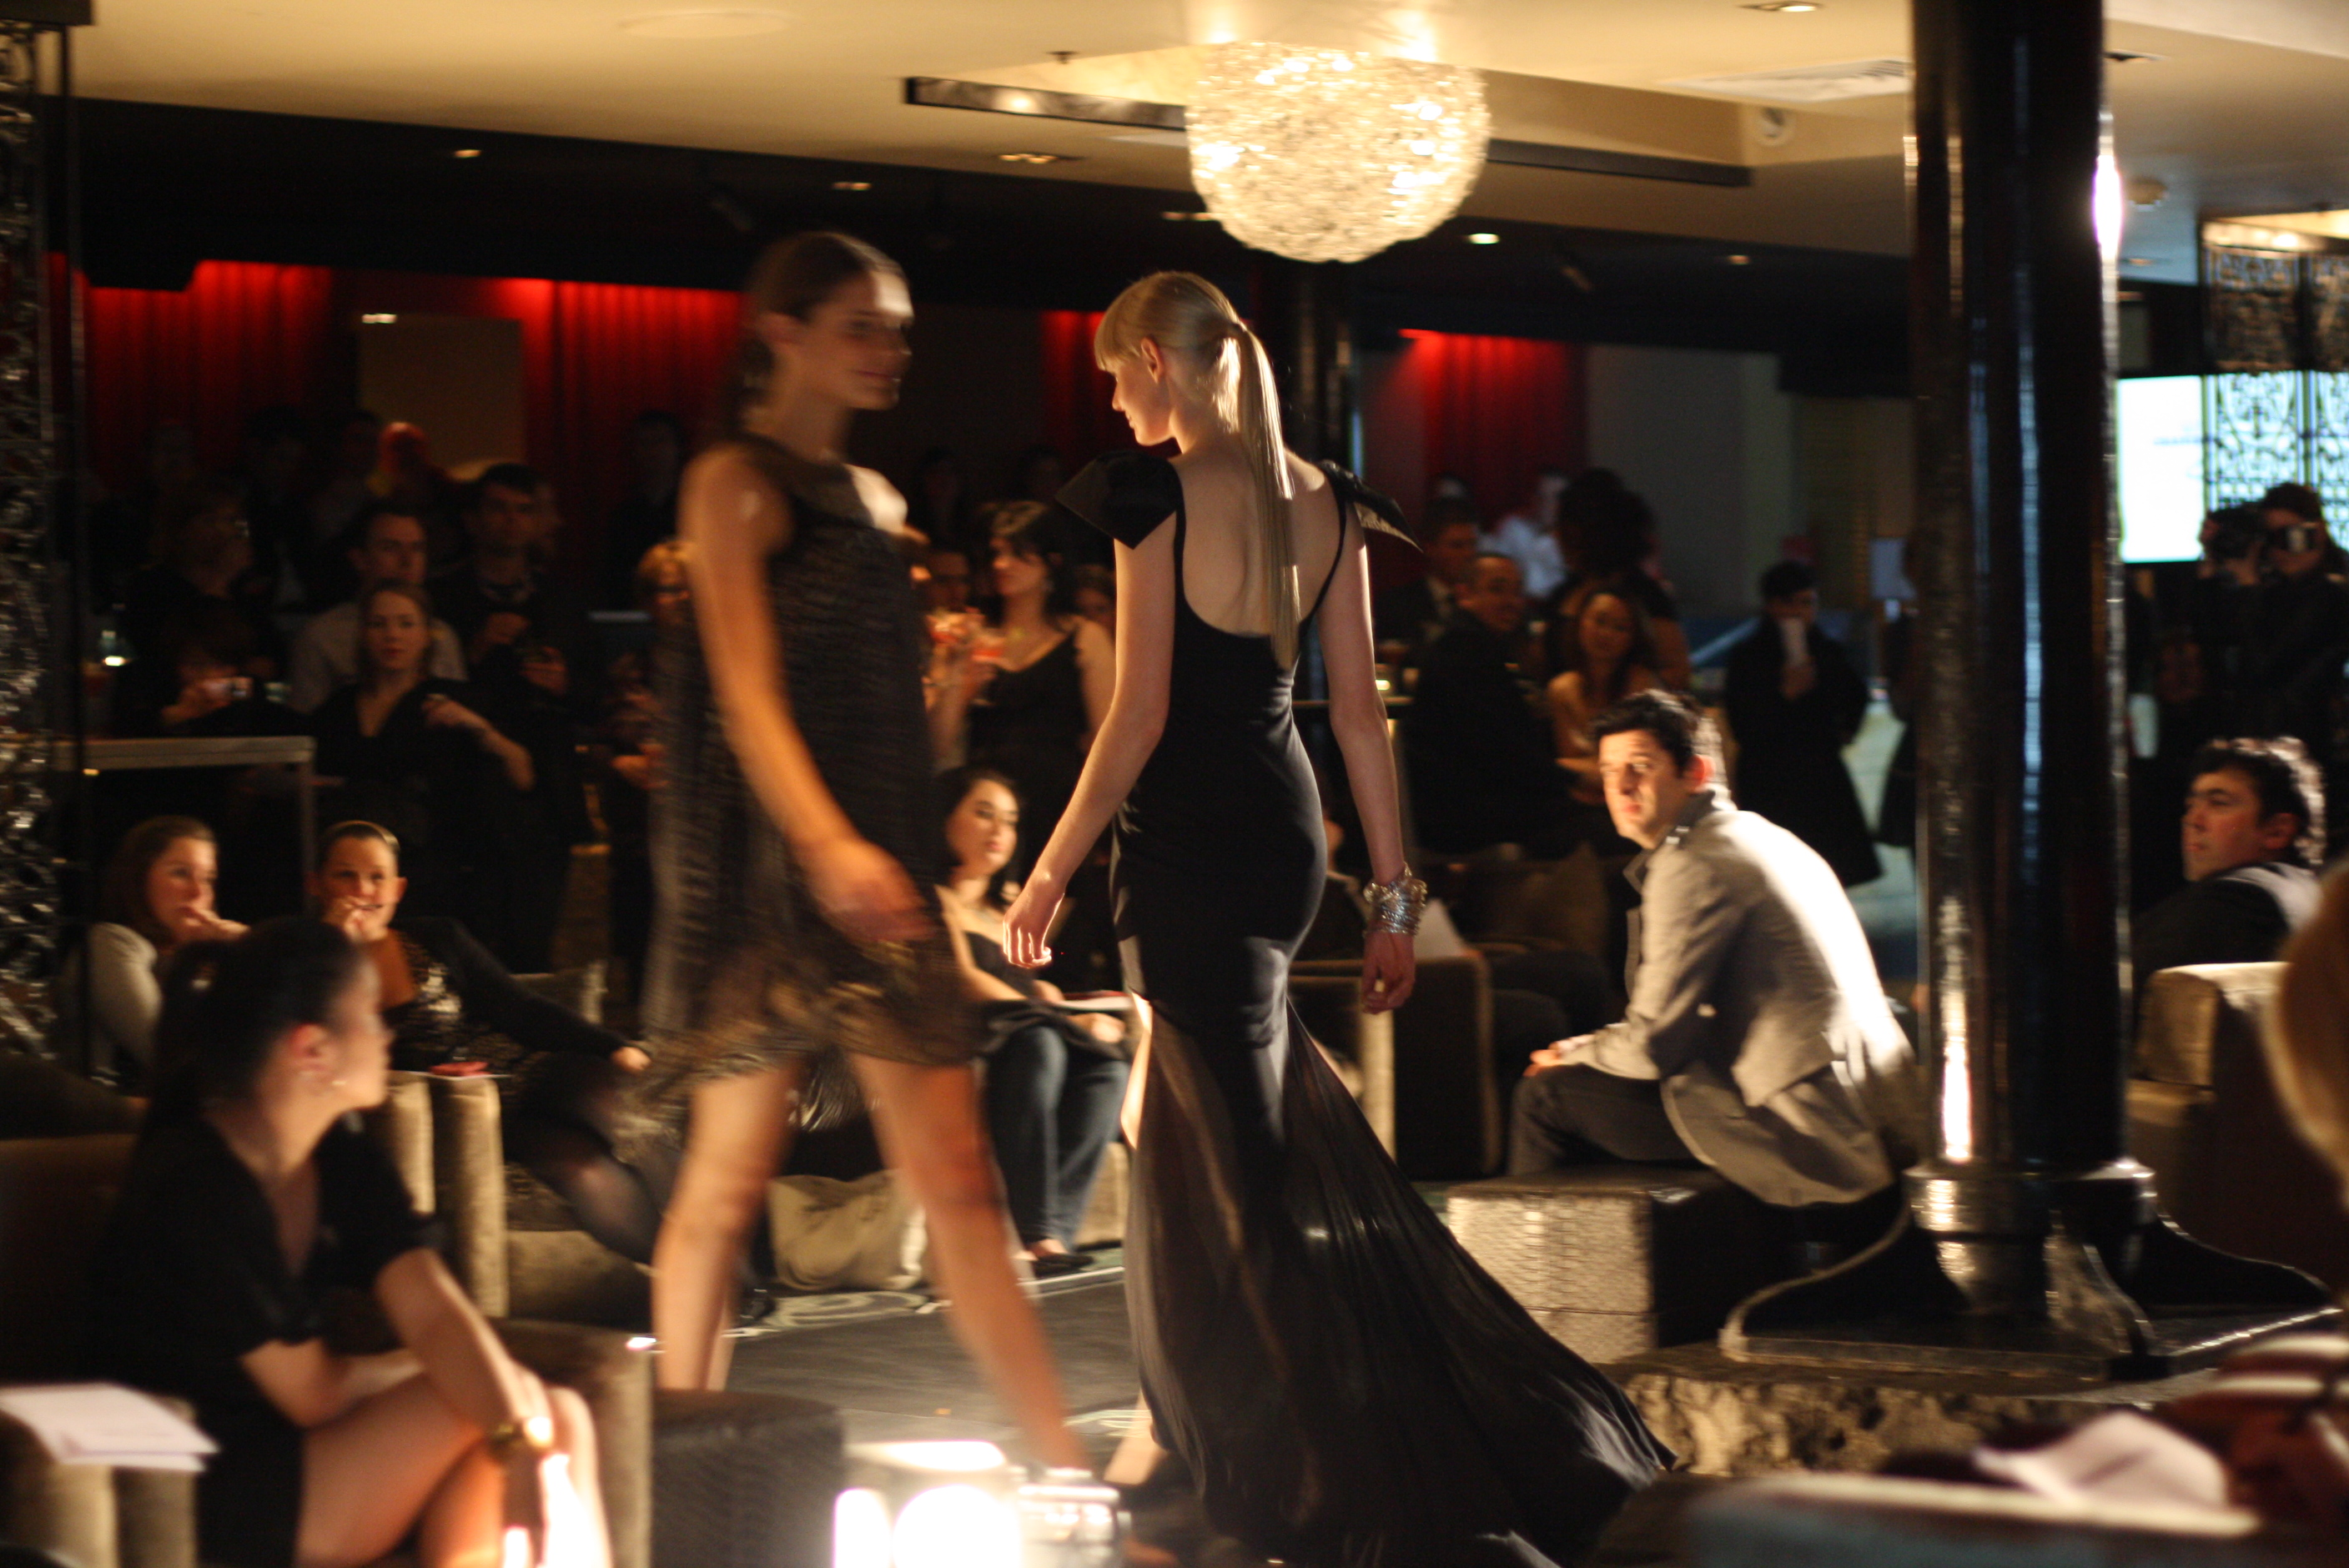 Two models pass each other on the runway, the model in focus is wearing a black sleeveless tight dress with a flowing black mesh train.